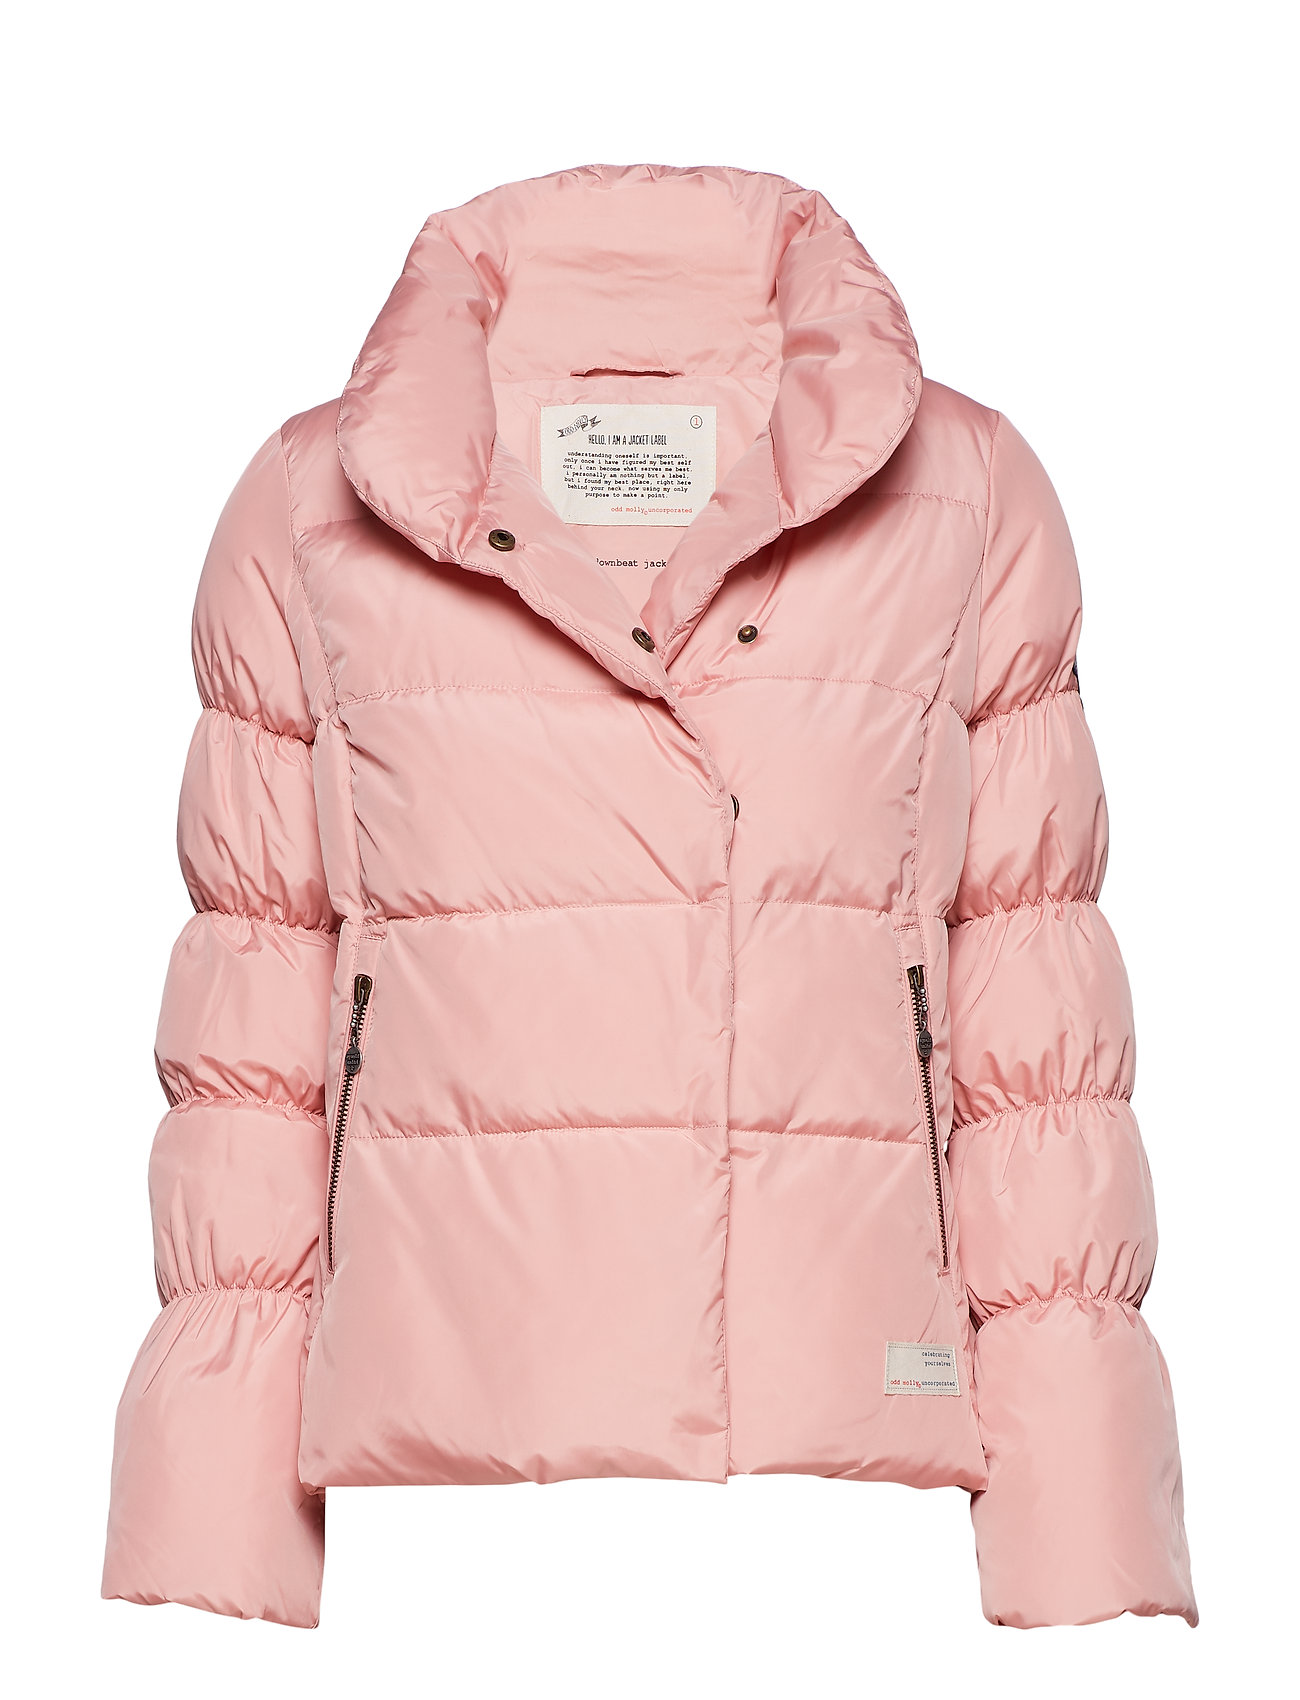 ODD MOLLY downbeat jacket - SHADOW PINK